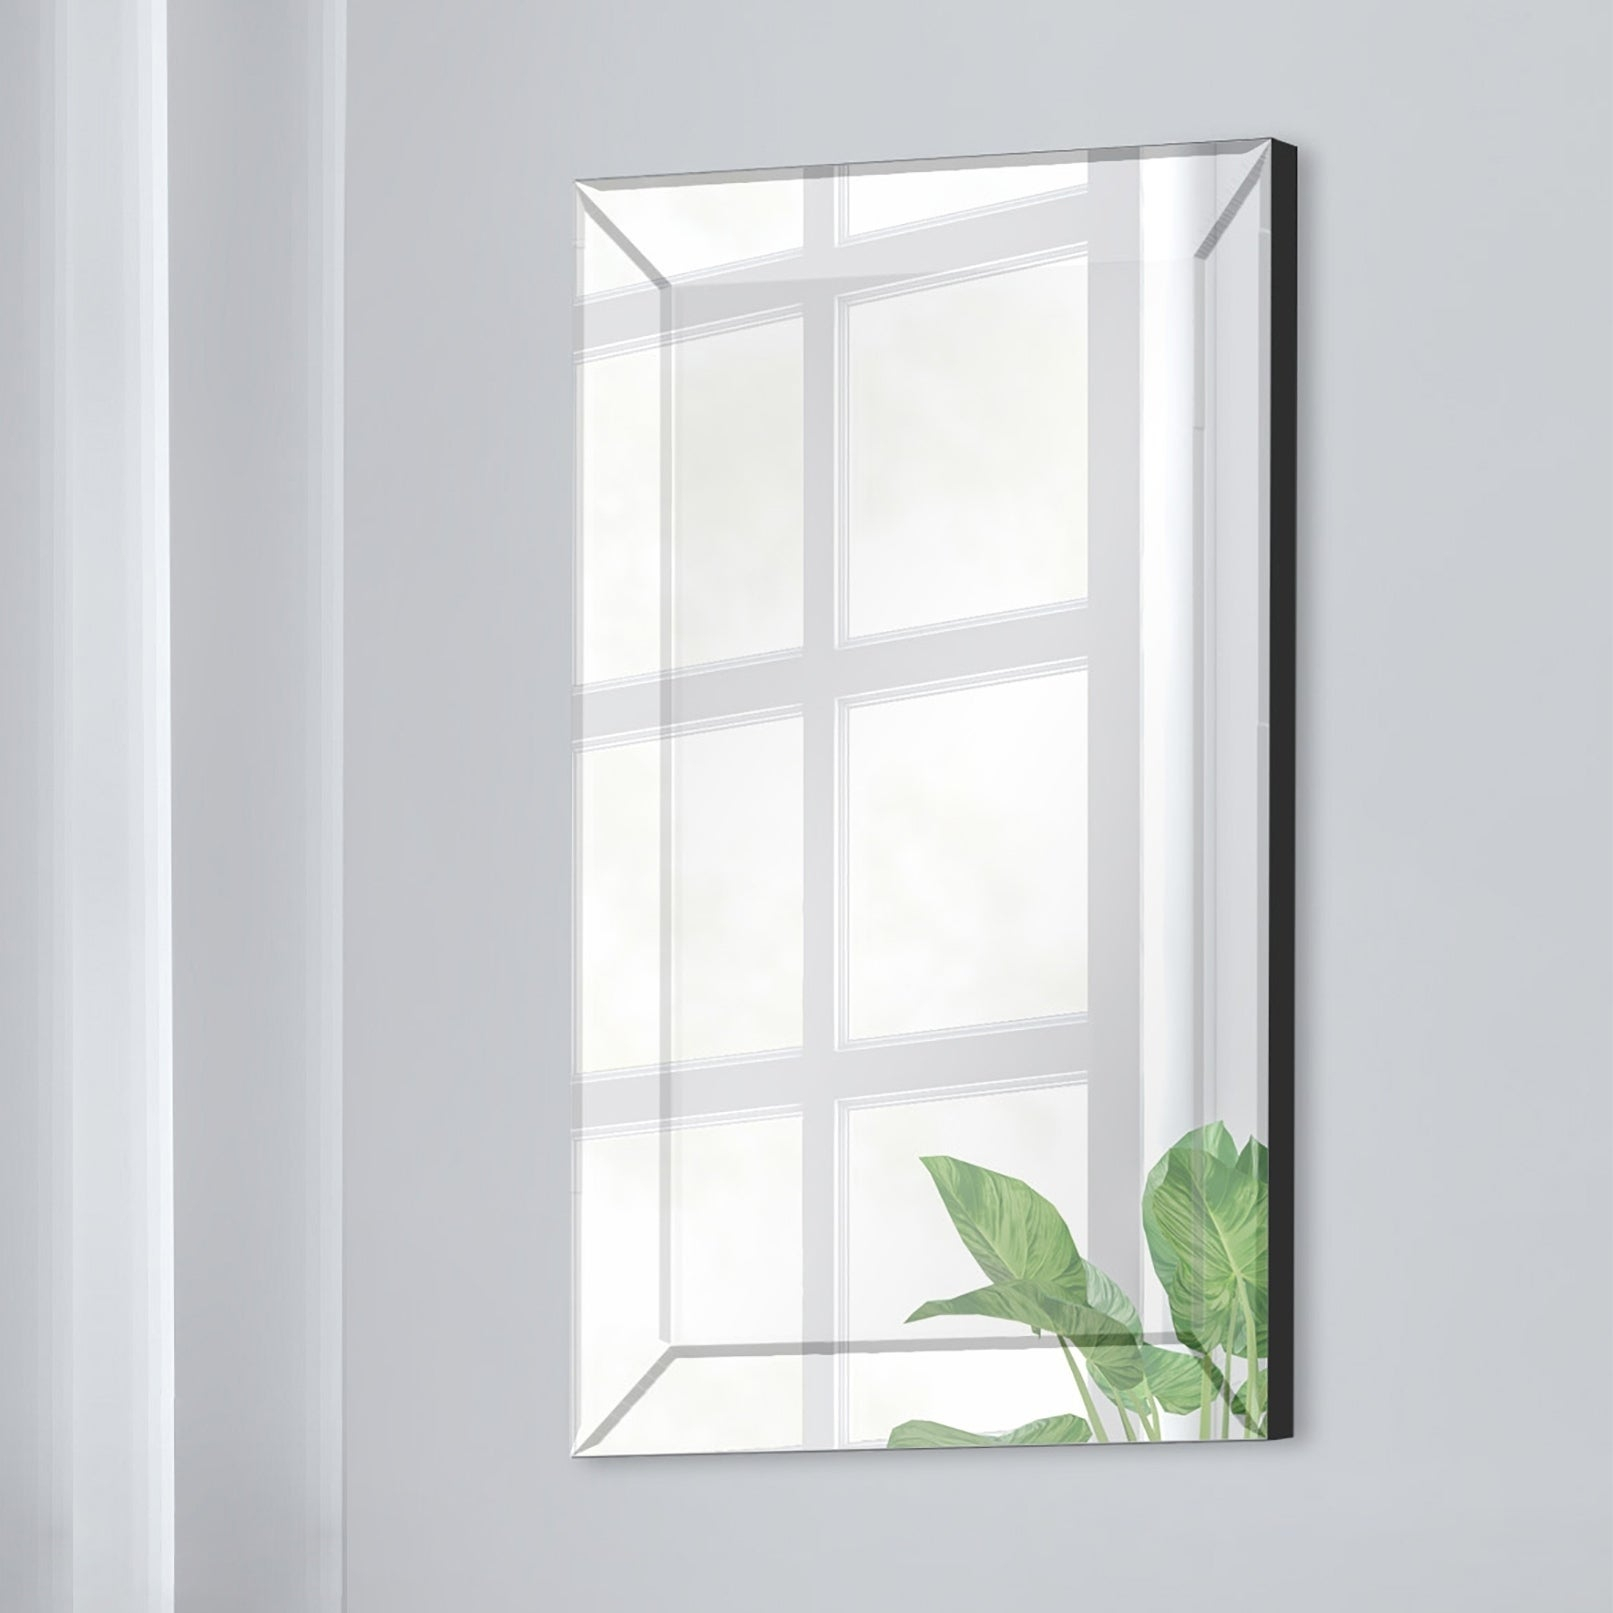 Gallery Solutions Mirror Framed Beveled Wall Accent Mirror – Silver Pertaining To Glam Beveled Accent Mirrors (View 12 of 30)